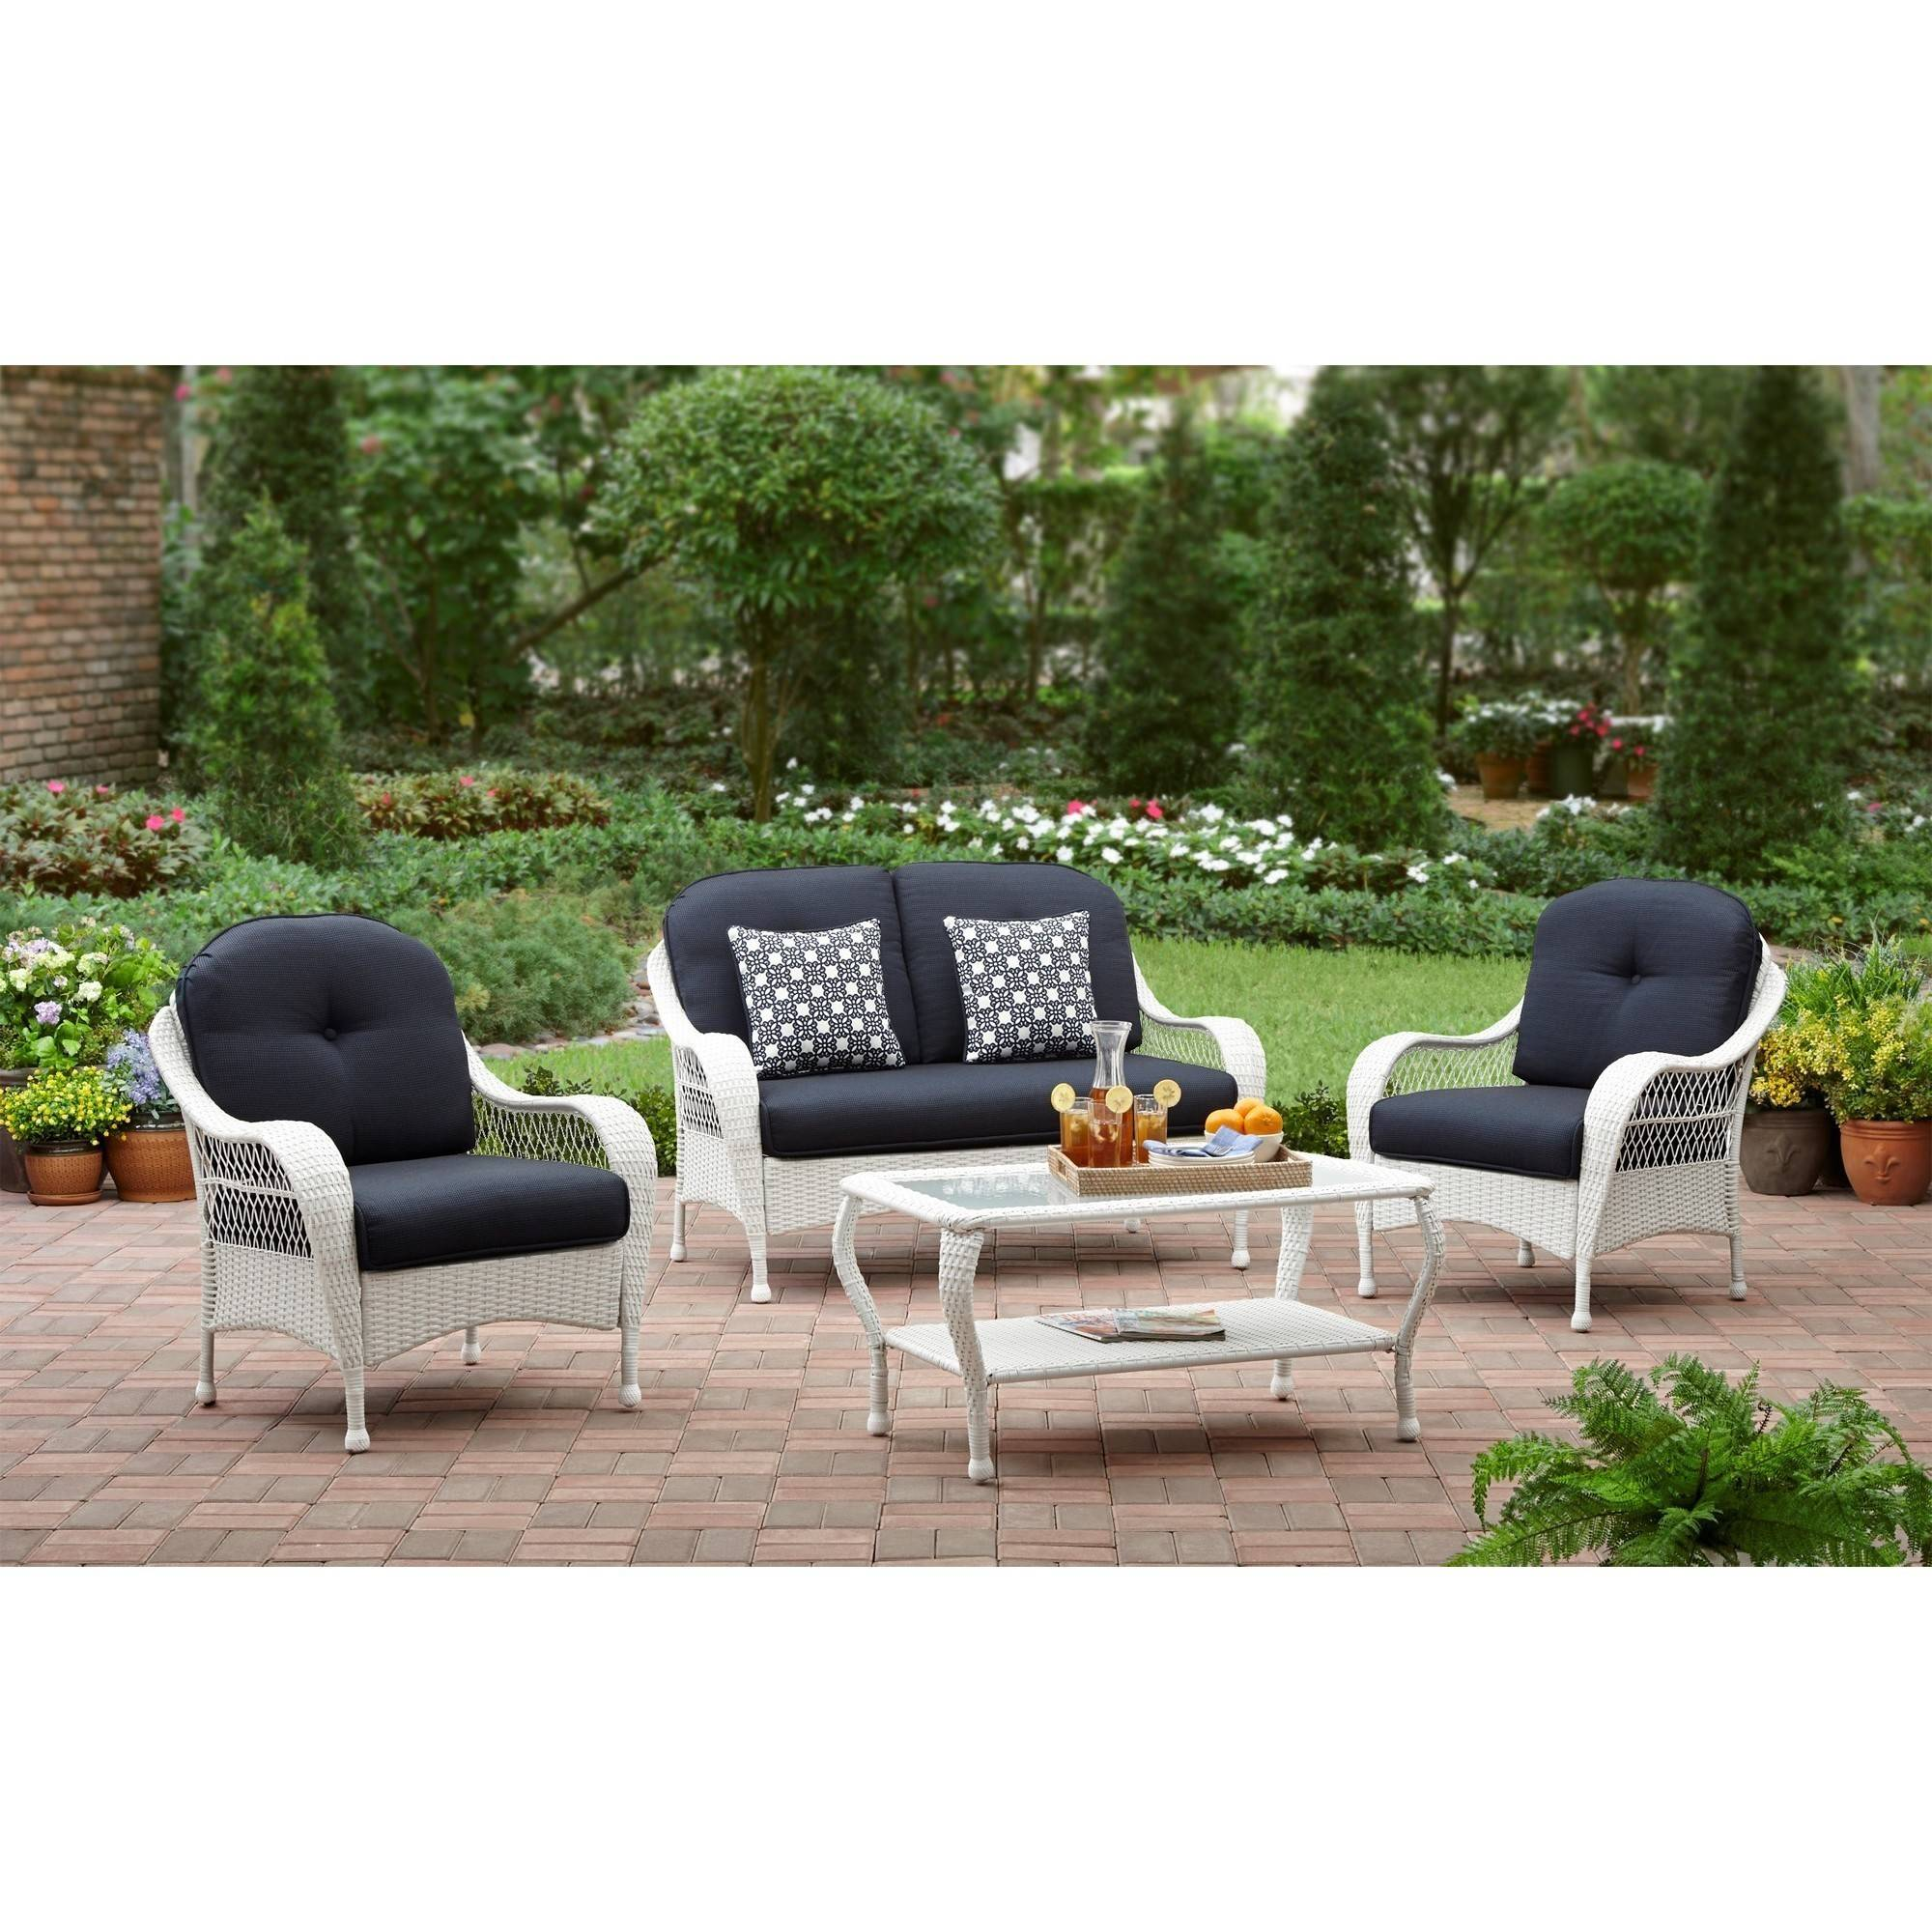 Better Homes and Gardens Azalea Ridge Outdoor Patio Conversation Set